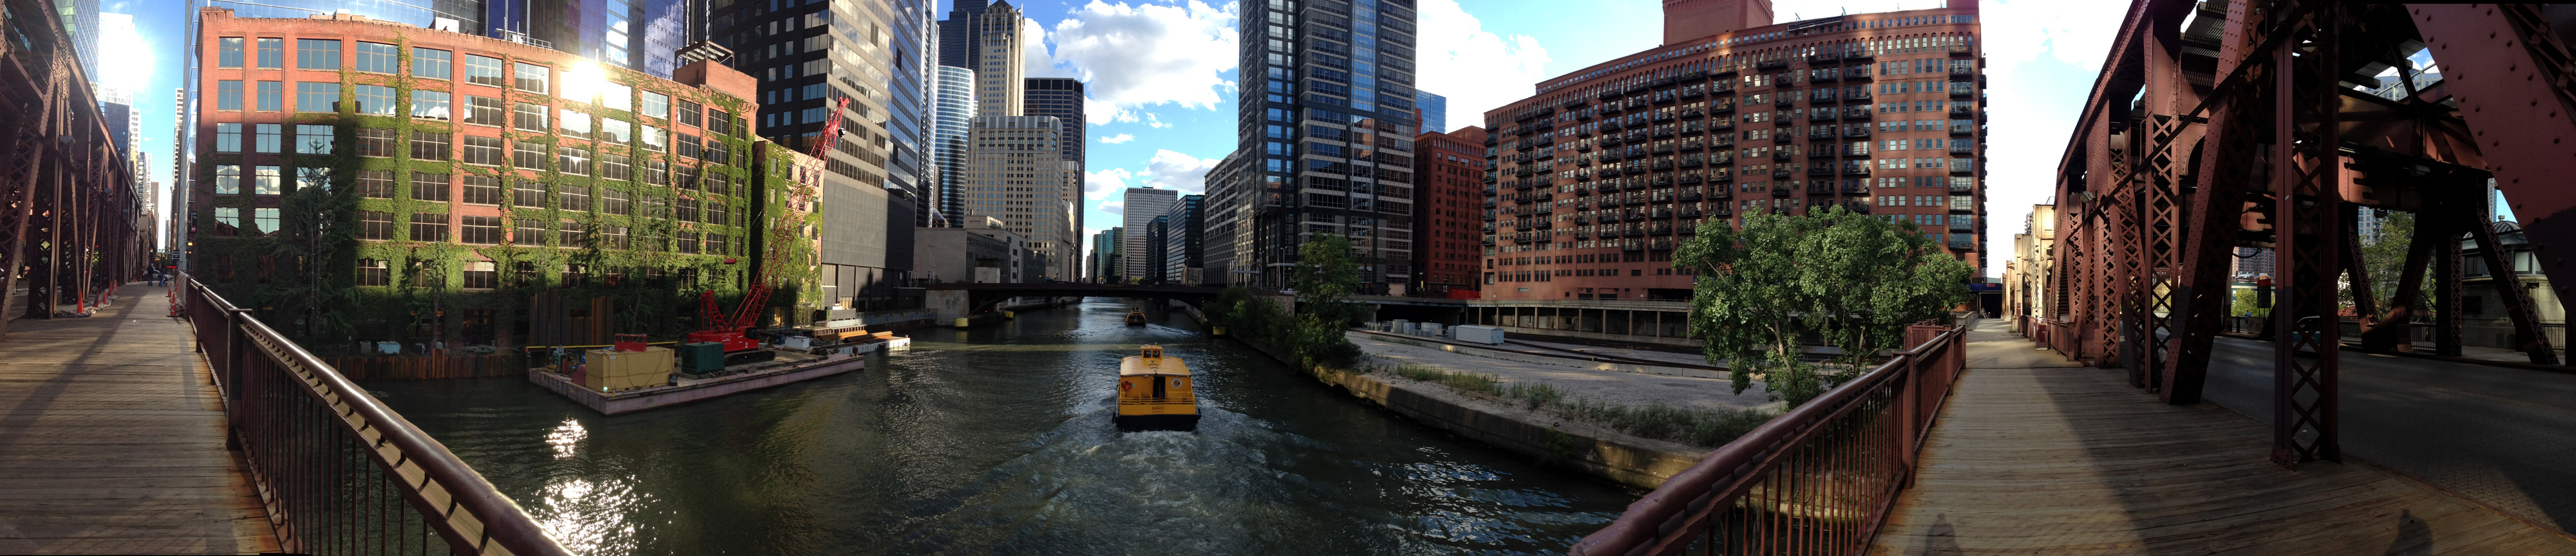 A nice view of downtown Chicago facing south from the Lake Street bridge.